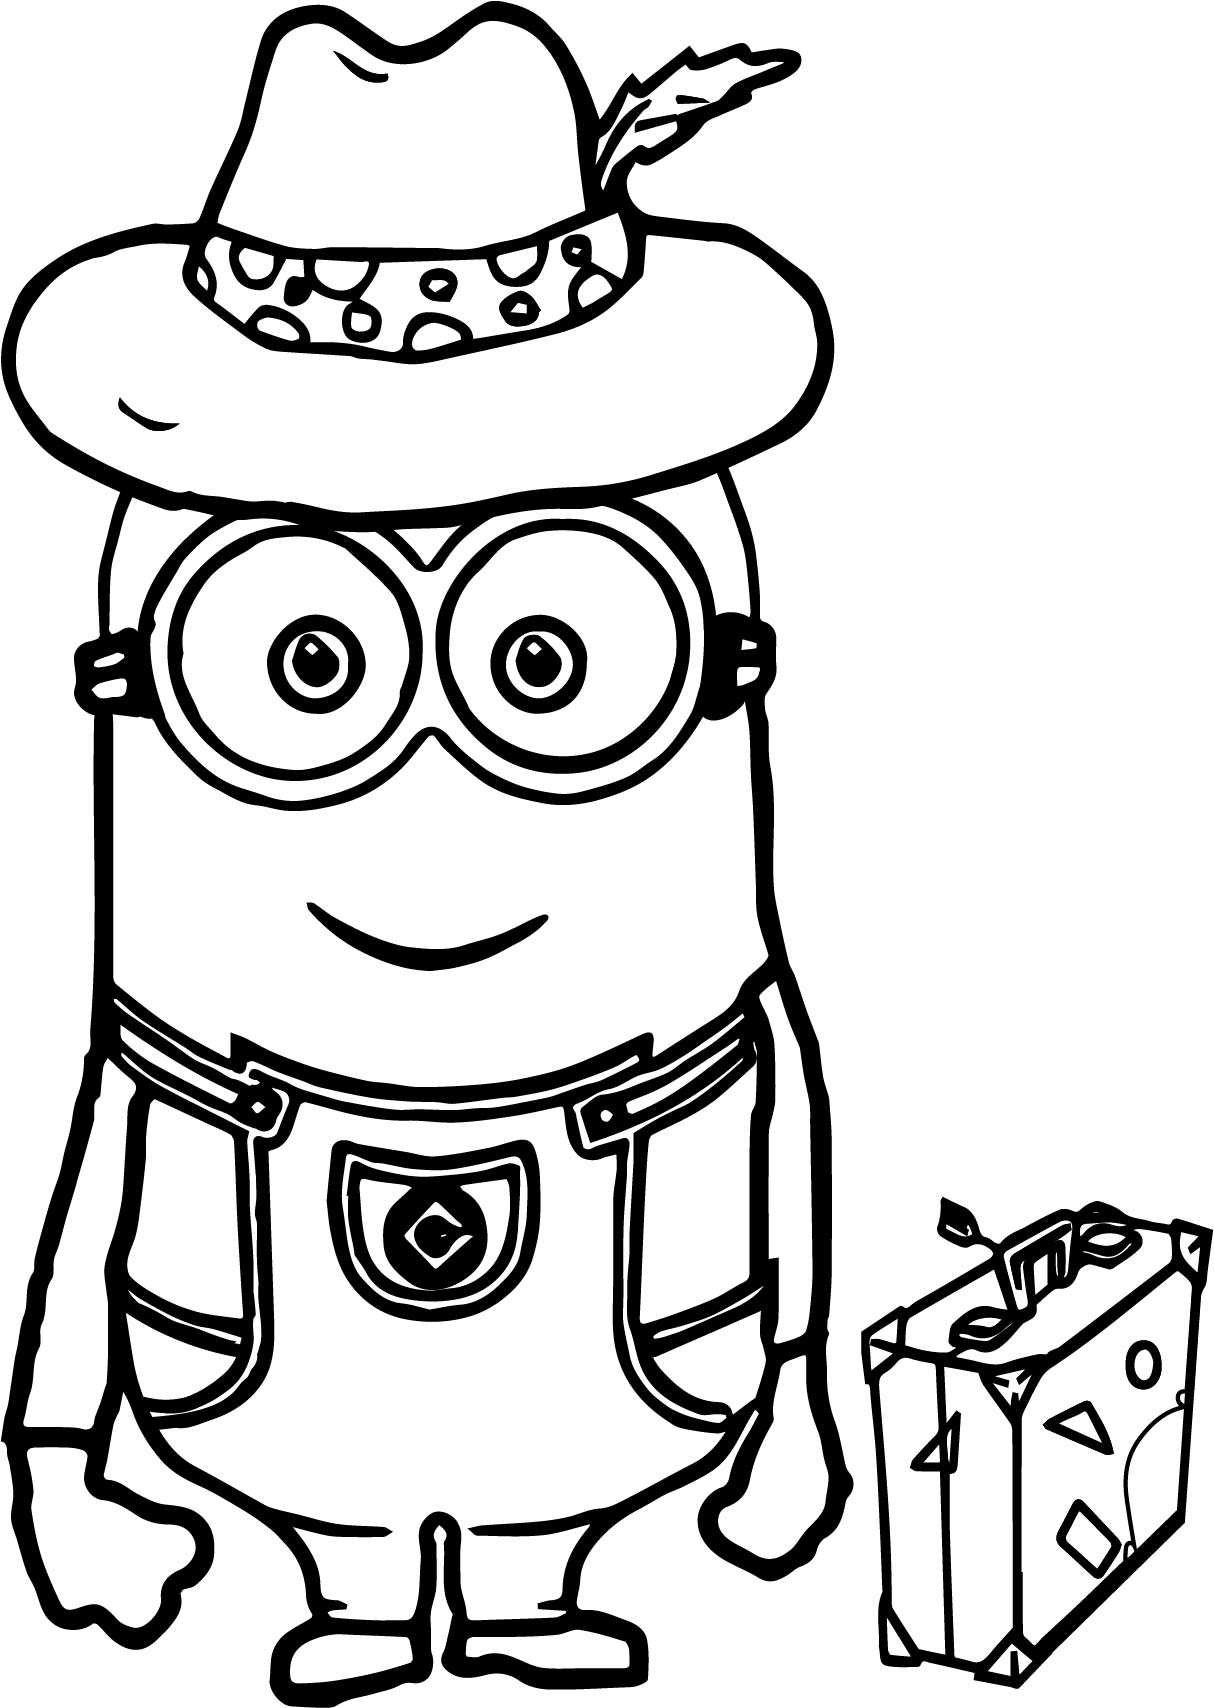 Minions Going Travel Coloring Page Wecoloringpage